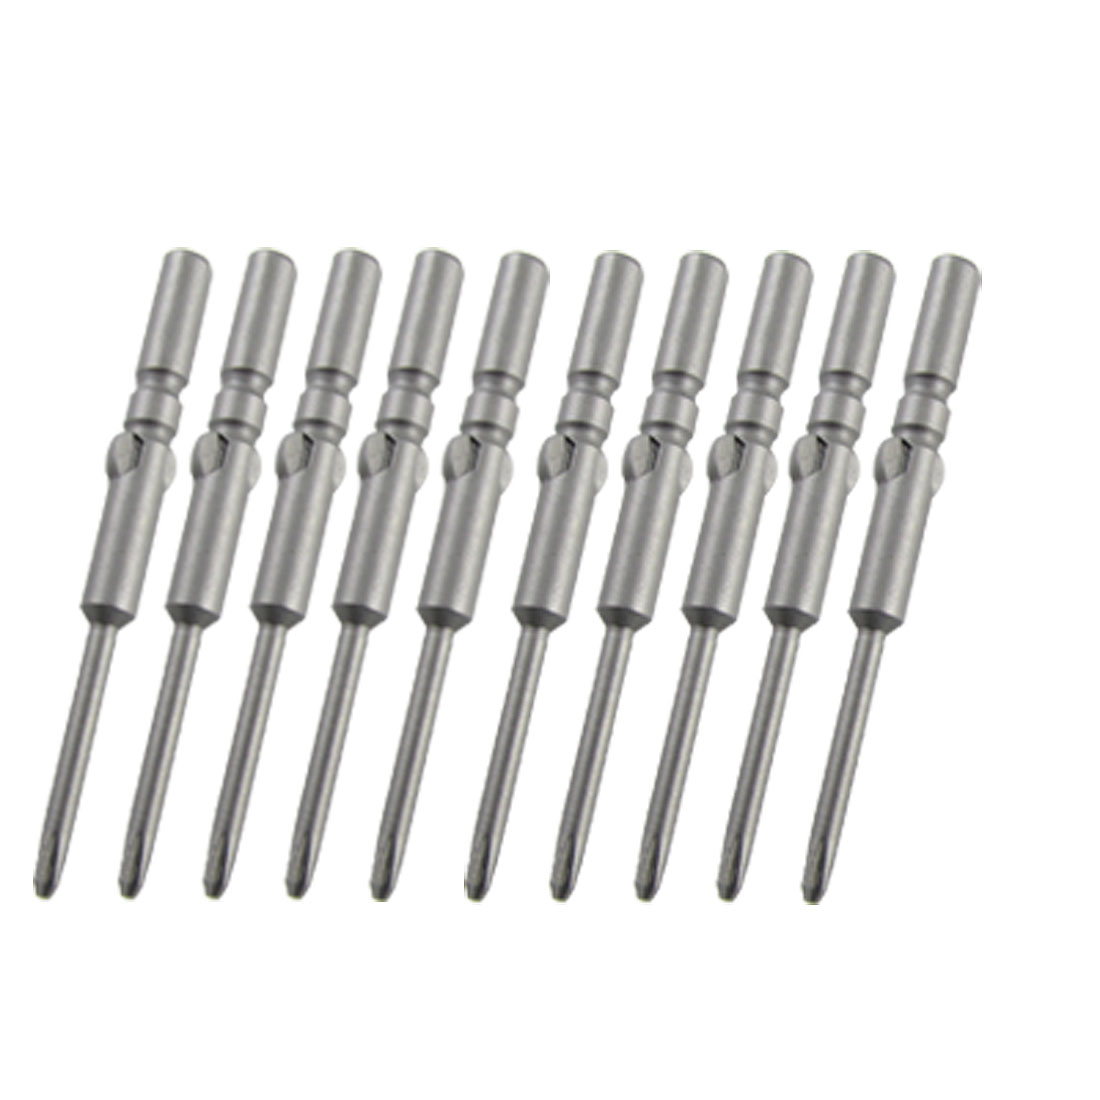 Magnetic Size 0# 2.0mm Cross Shape Screwdriver Bits 10 Pieces